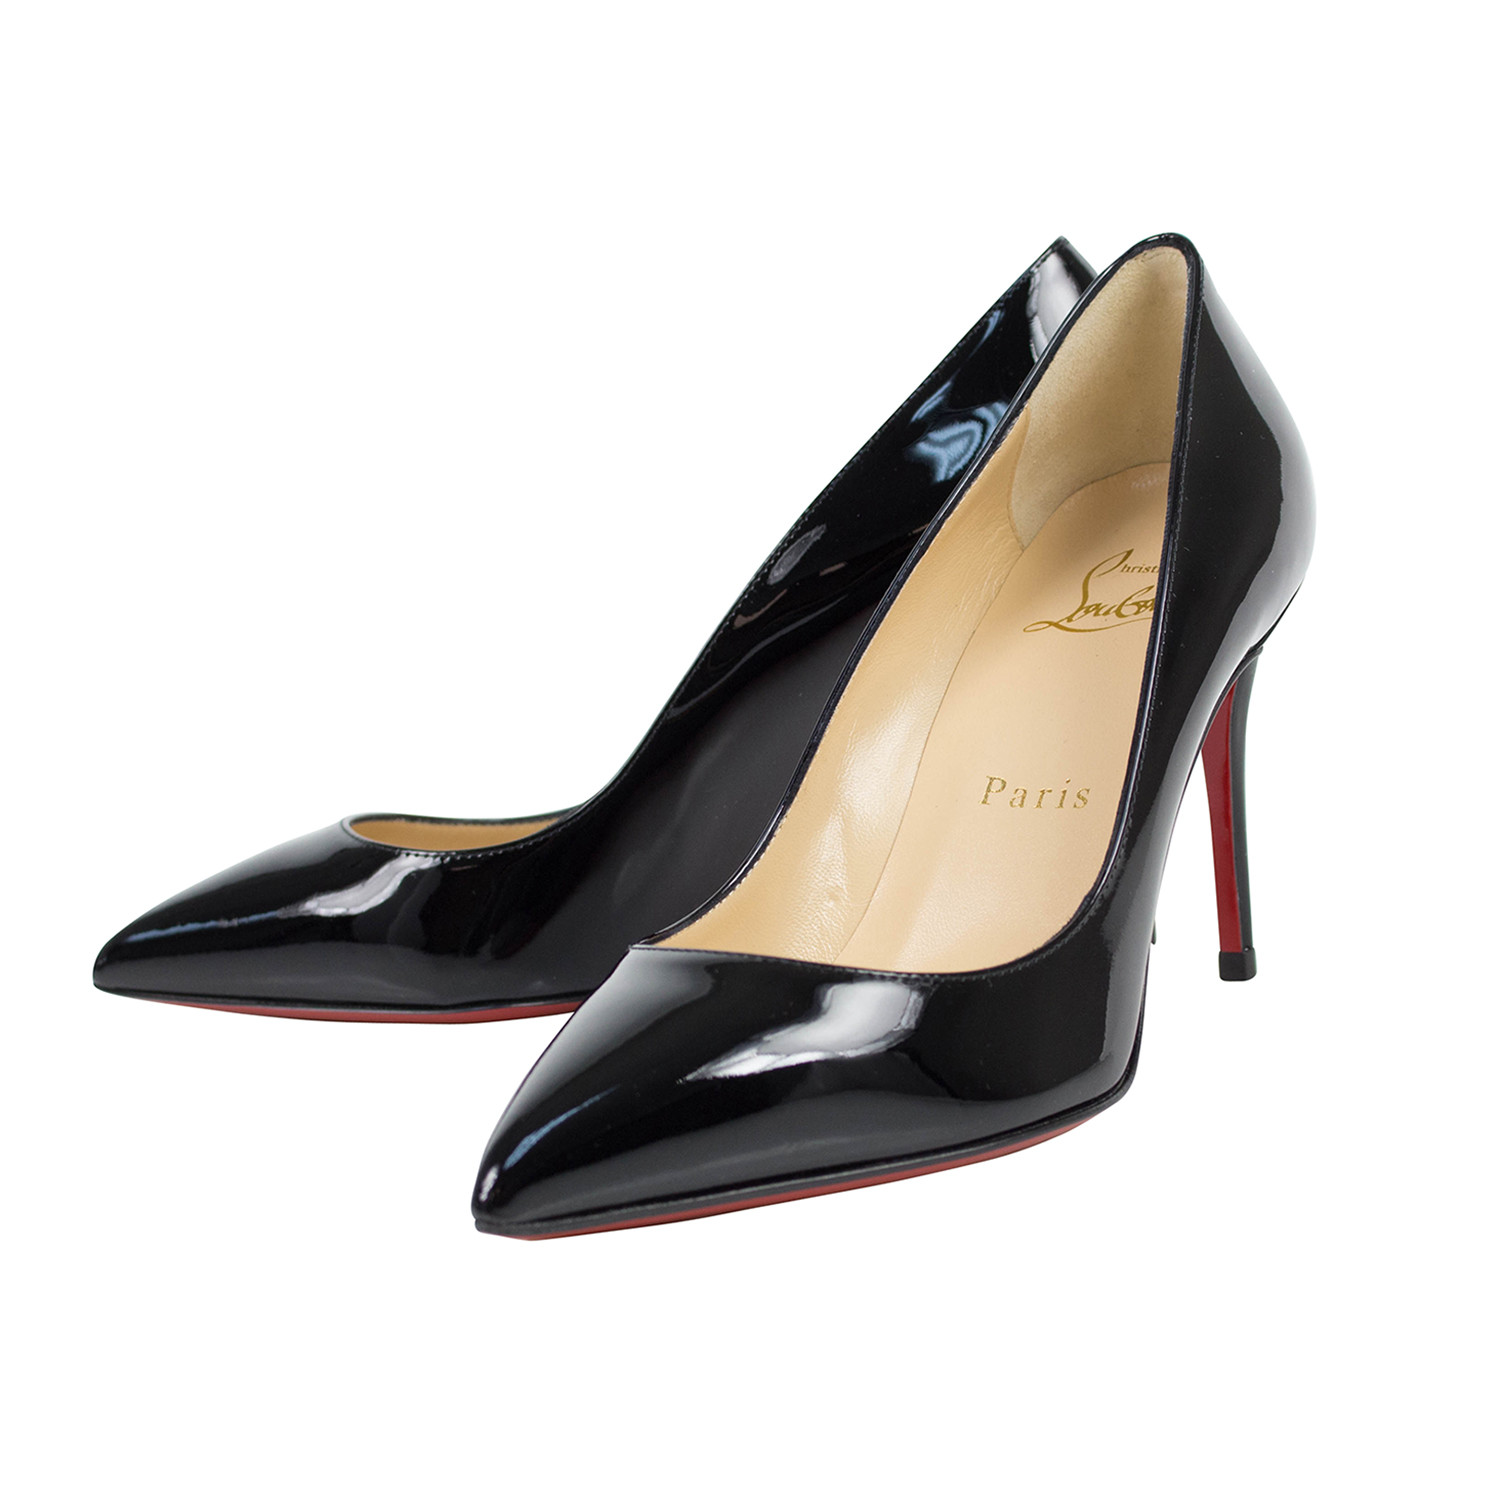 huge discount c1a94 c61f3 Pigalle Follies Patent Leather 85mm Pumps // Black (Euro: 34 ...